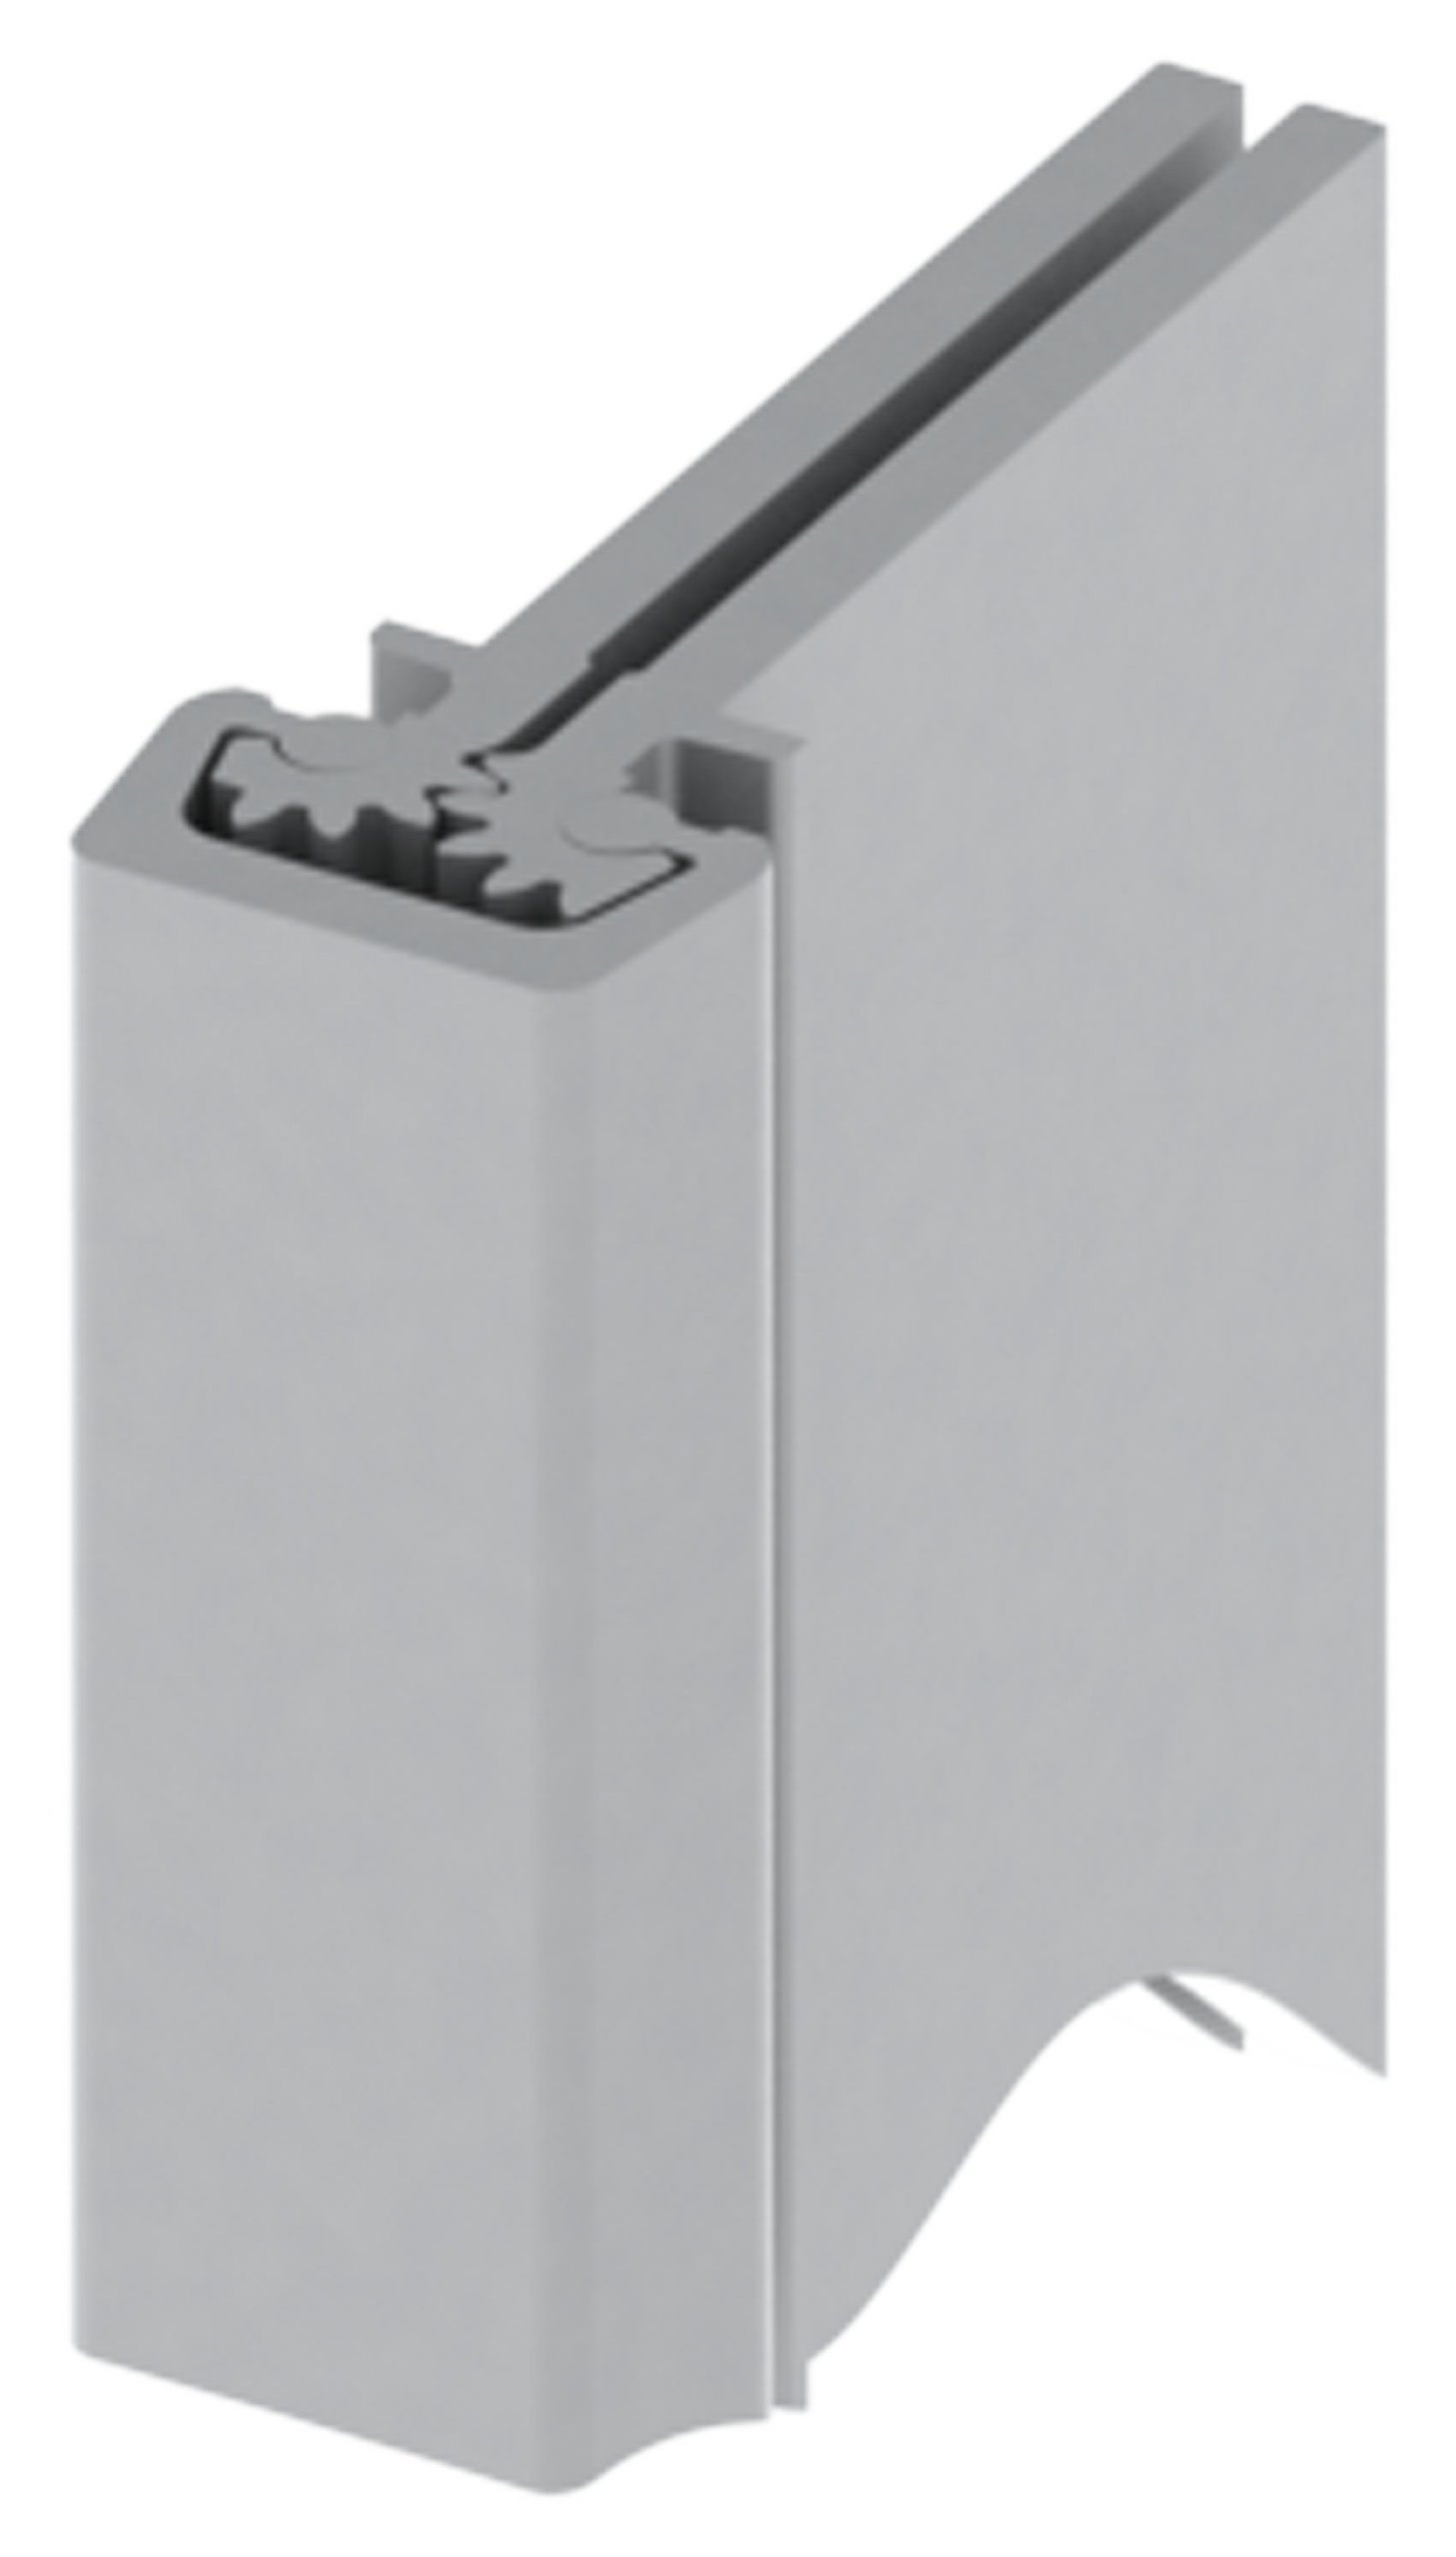 Hager 780-112 Series Aluminum Standard Duty Fire Rated Roton Continuous Geared Hinges, Concealed Leaf, Clear Anodized, 95'' Length (Pack of 1)